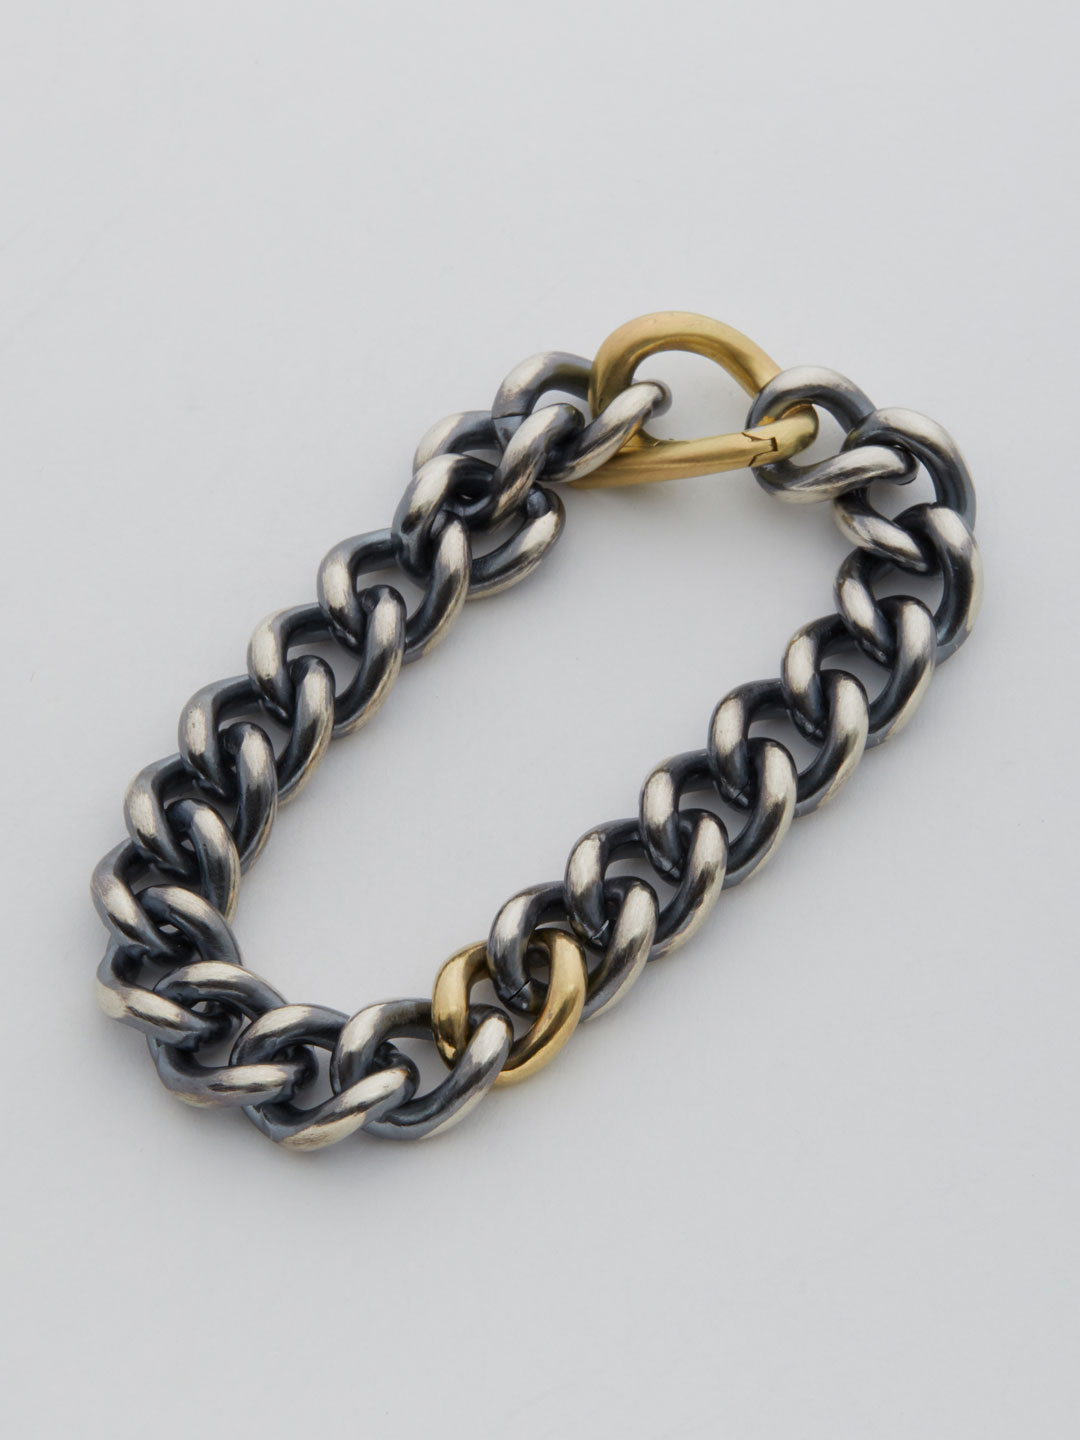 Humete Chain Bracelet 11 Large Clasp / 3S  - Silver